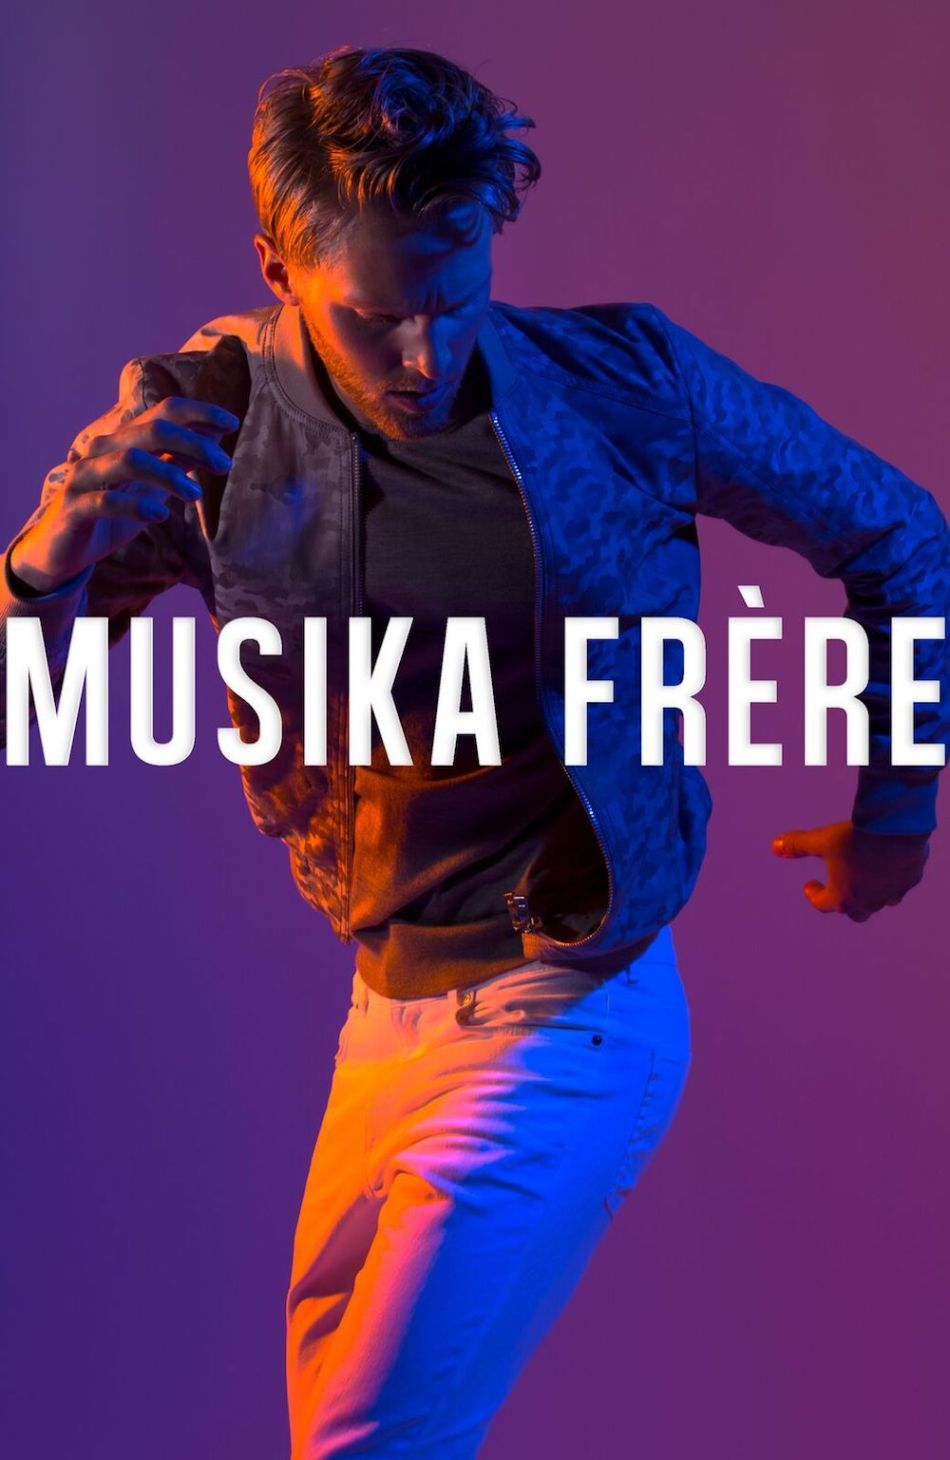 Musika Frere Menswear Lookbook by Michael Del Buono1